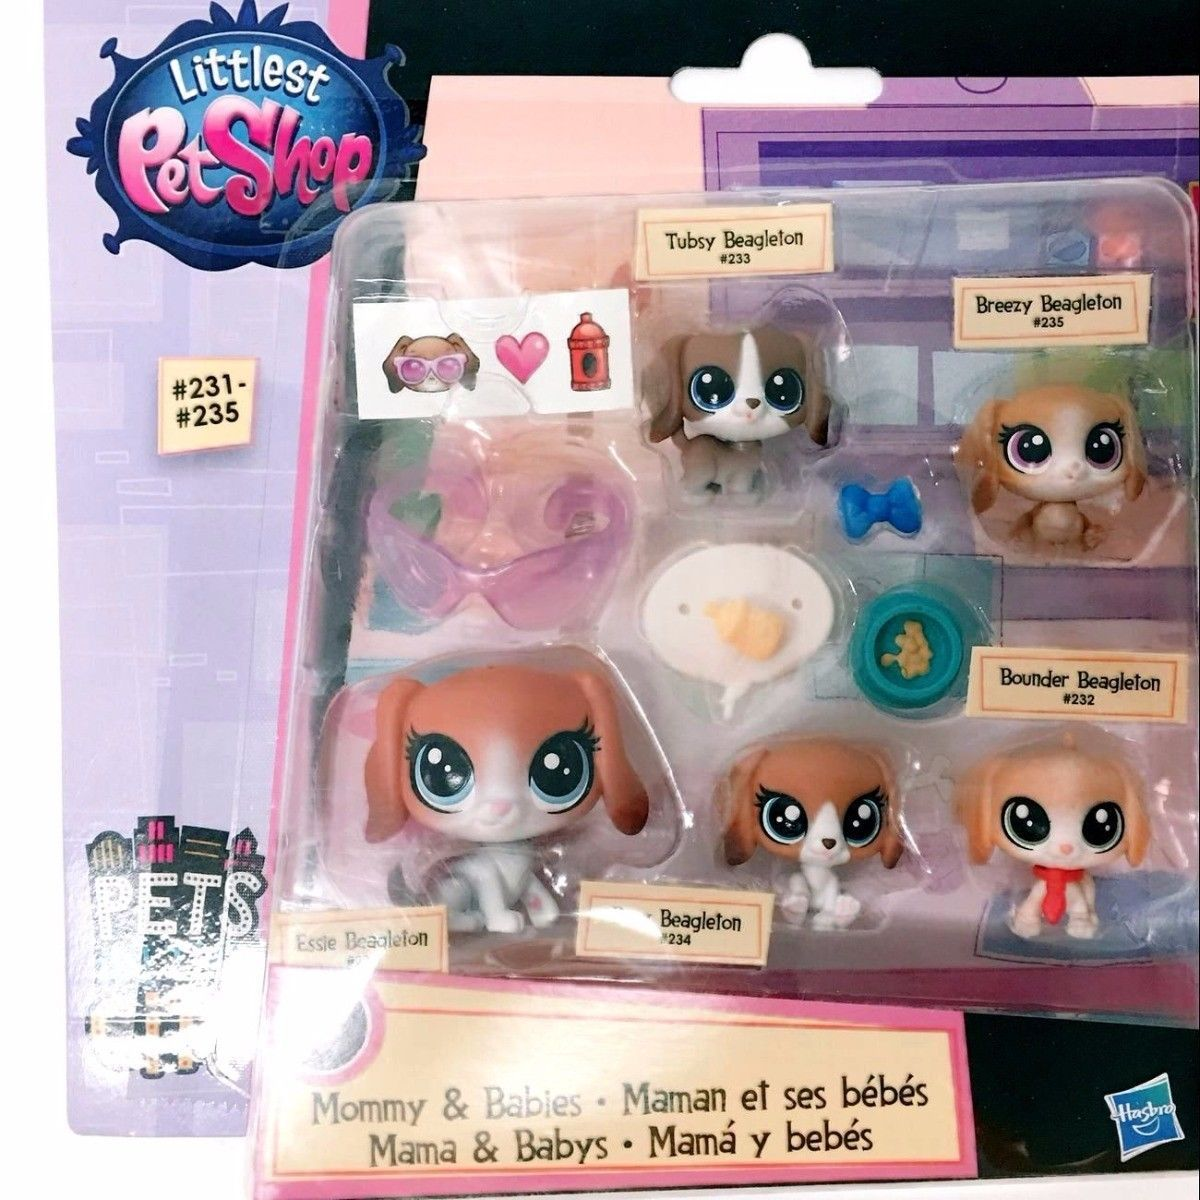 Hasbro Littlest Pet Shop Mommy Babies Beagle Dog Family Figure Cute Toy Doll Ebay Collectibles Baby Beagle Cute Toys Littlest Pet Shop